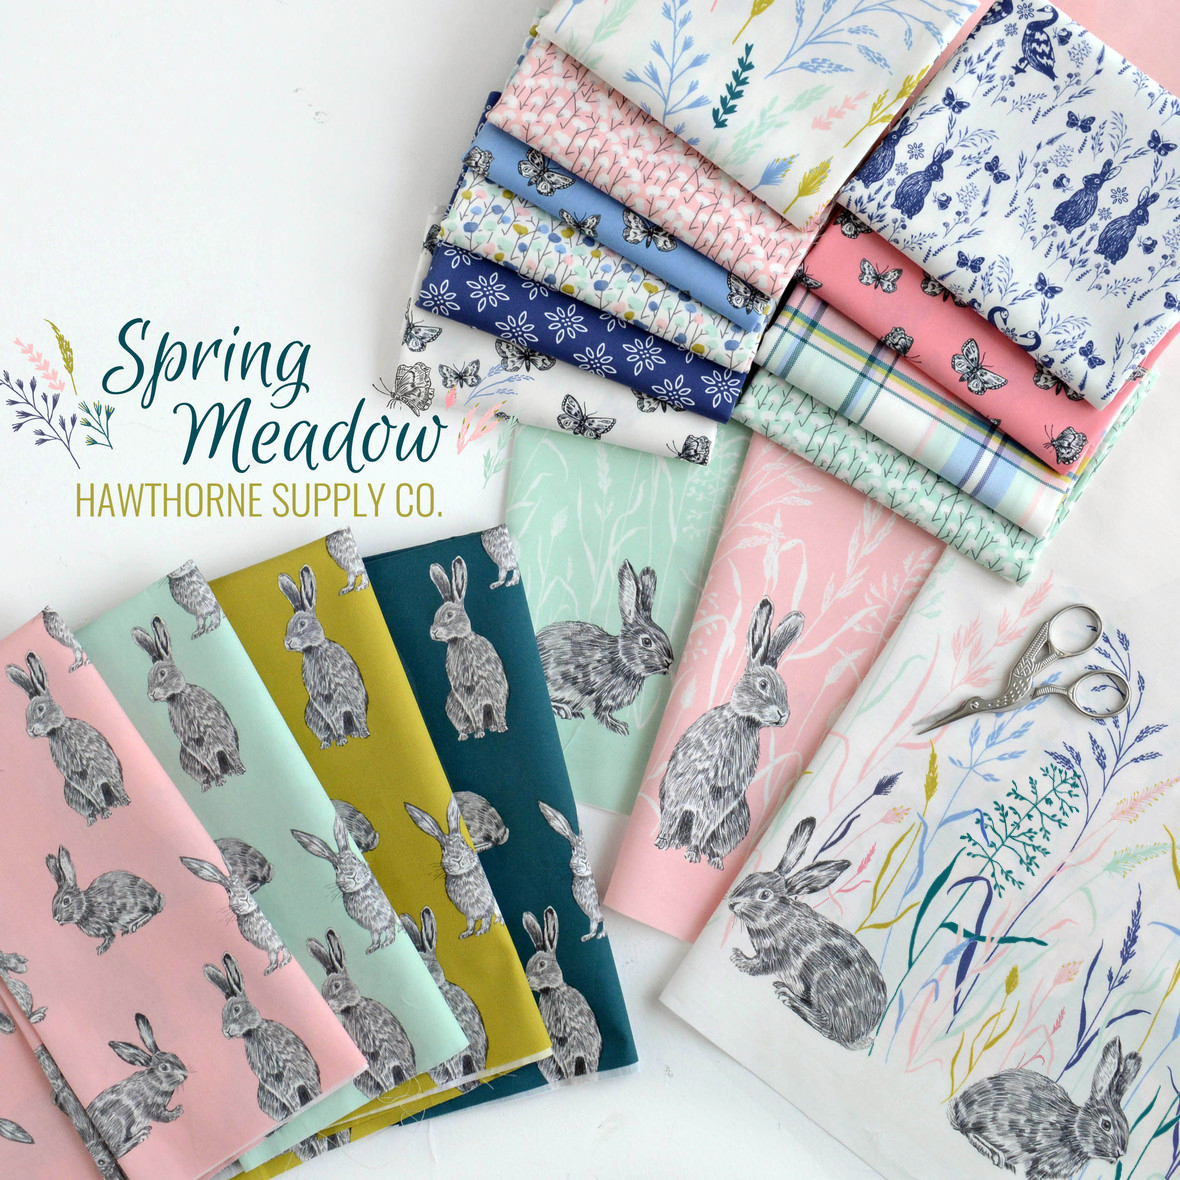 Spring Meadow Fabric Poster Hawthorne Supply Co edit JPG